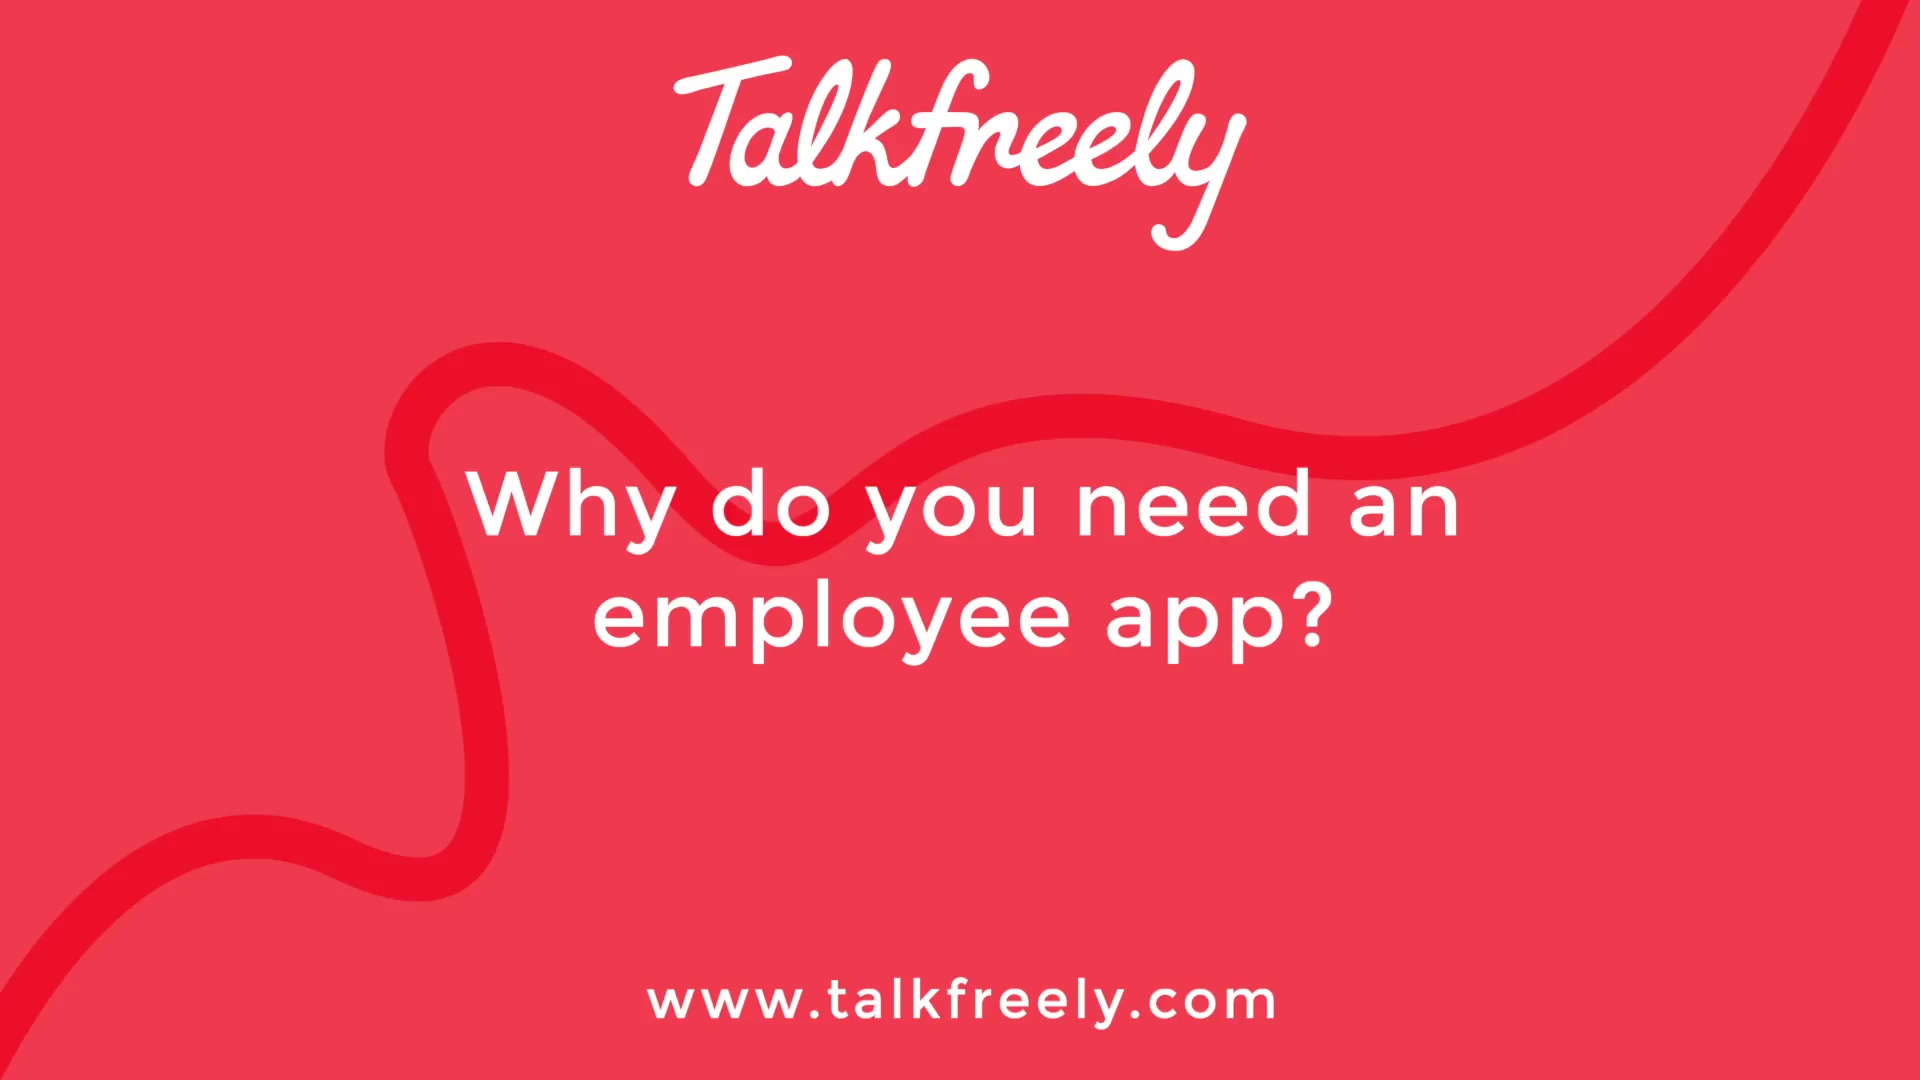 Talkfreely why you need an employee app